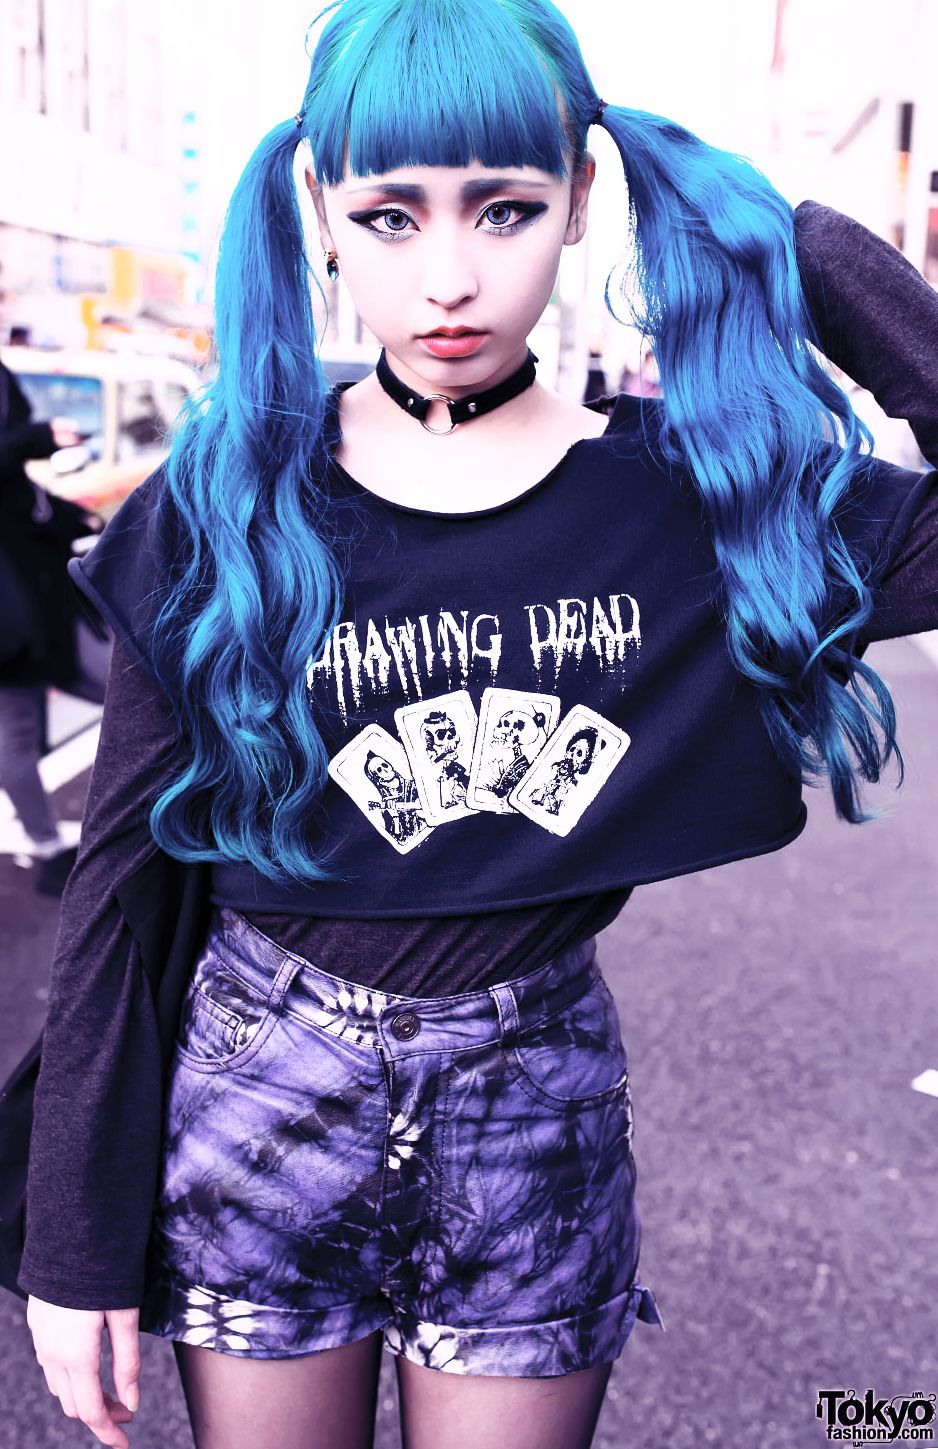 Blue hair, eyebrows, and eye contacts. Pigtails with straight across forehead bang and wavy ends. Leather choker with ring. Drawing Dead playing card cut black shirt with long sleeve underneath. High wasted shorts with floral grungy pattern and rolled up cuffs.View more photos at the source article.